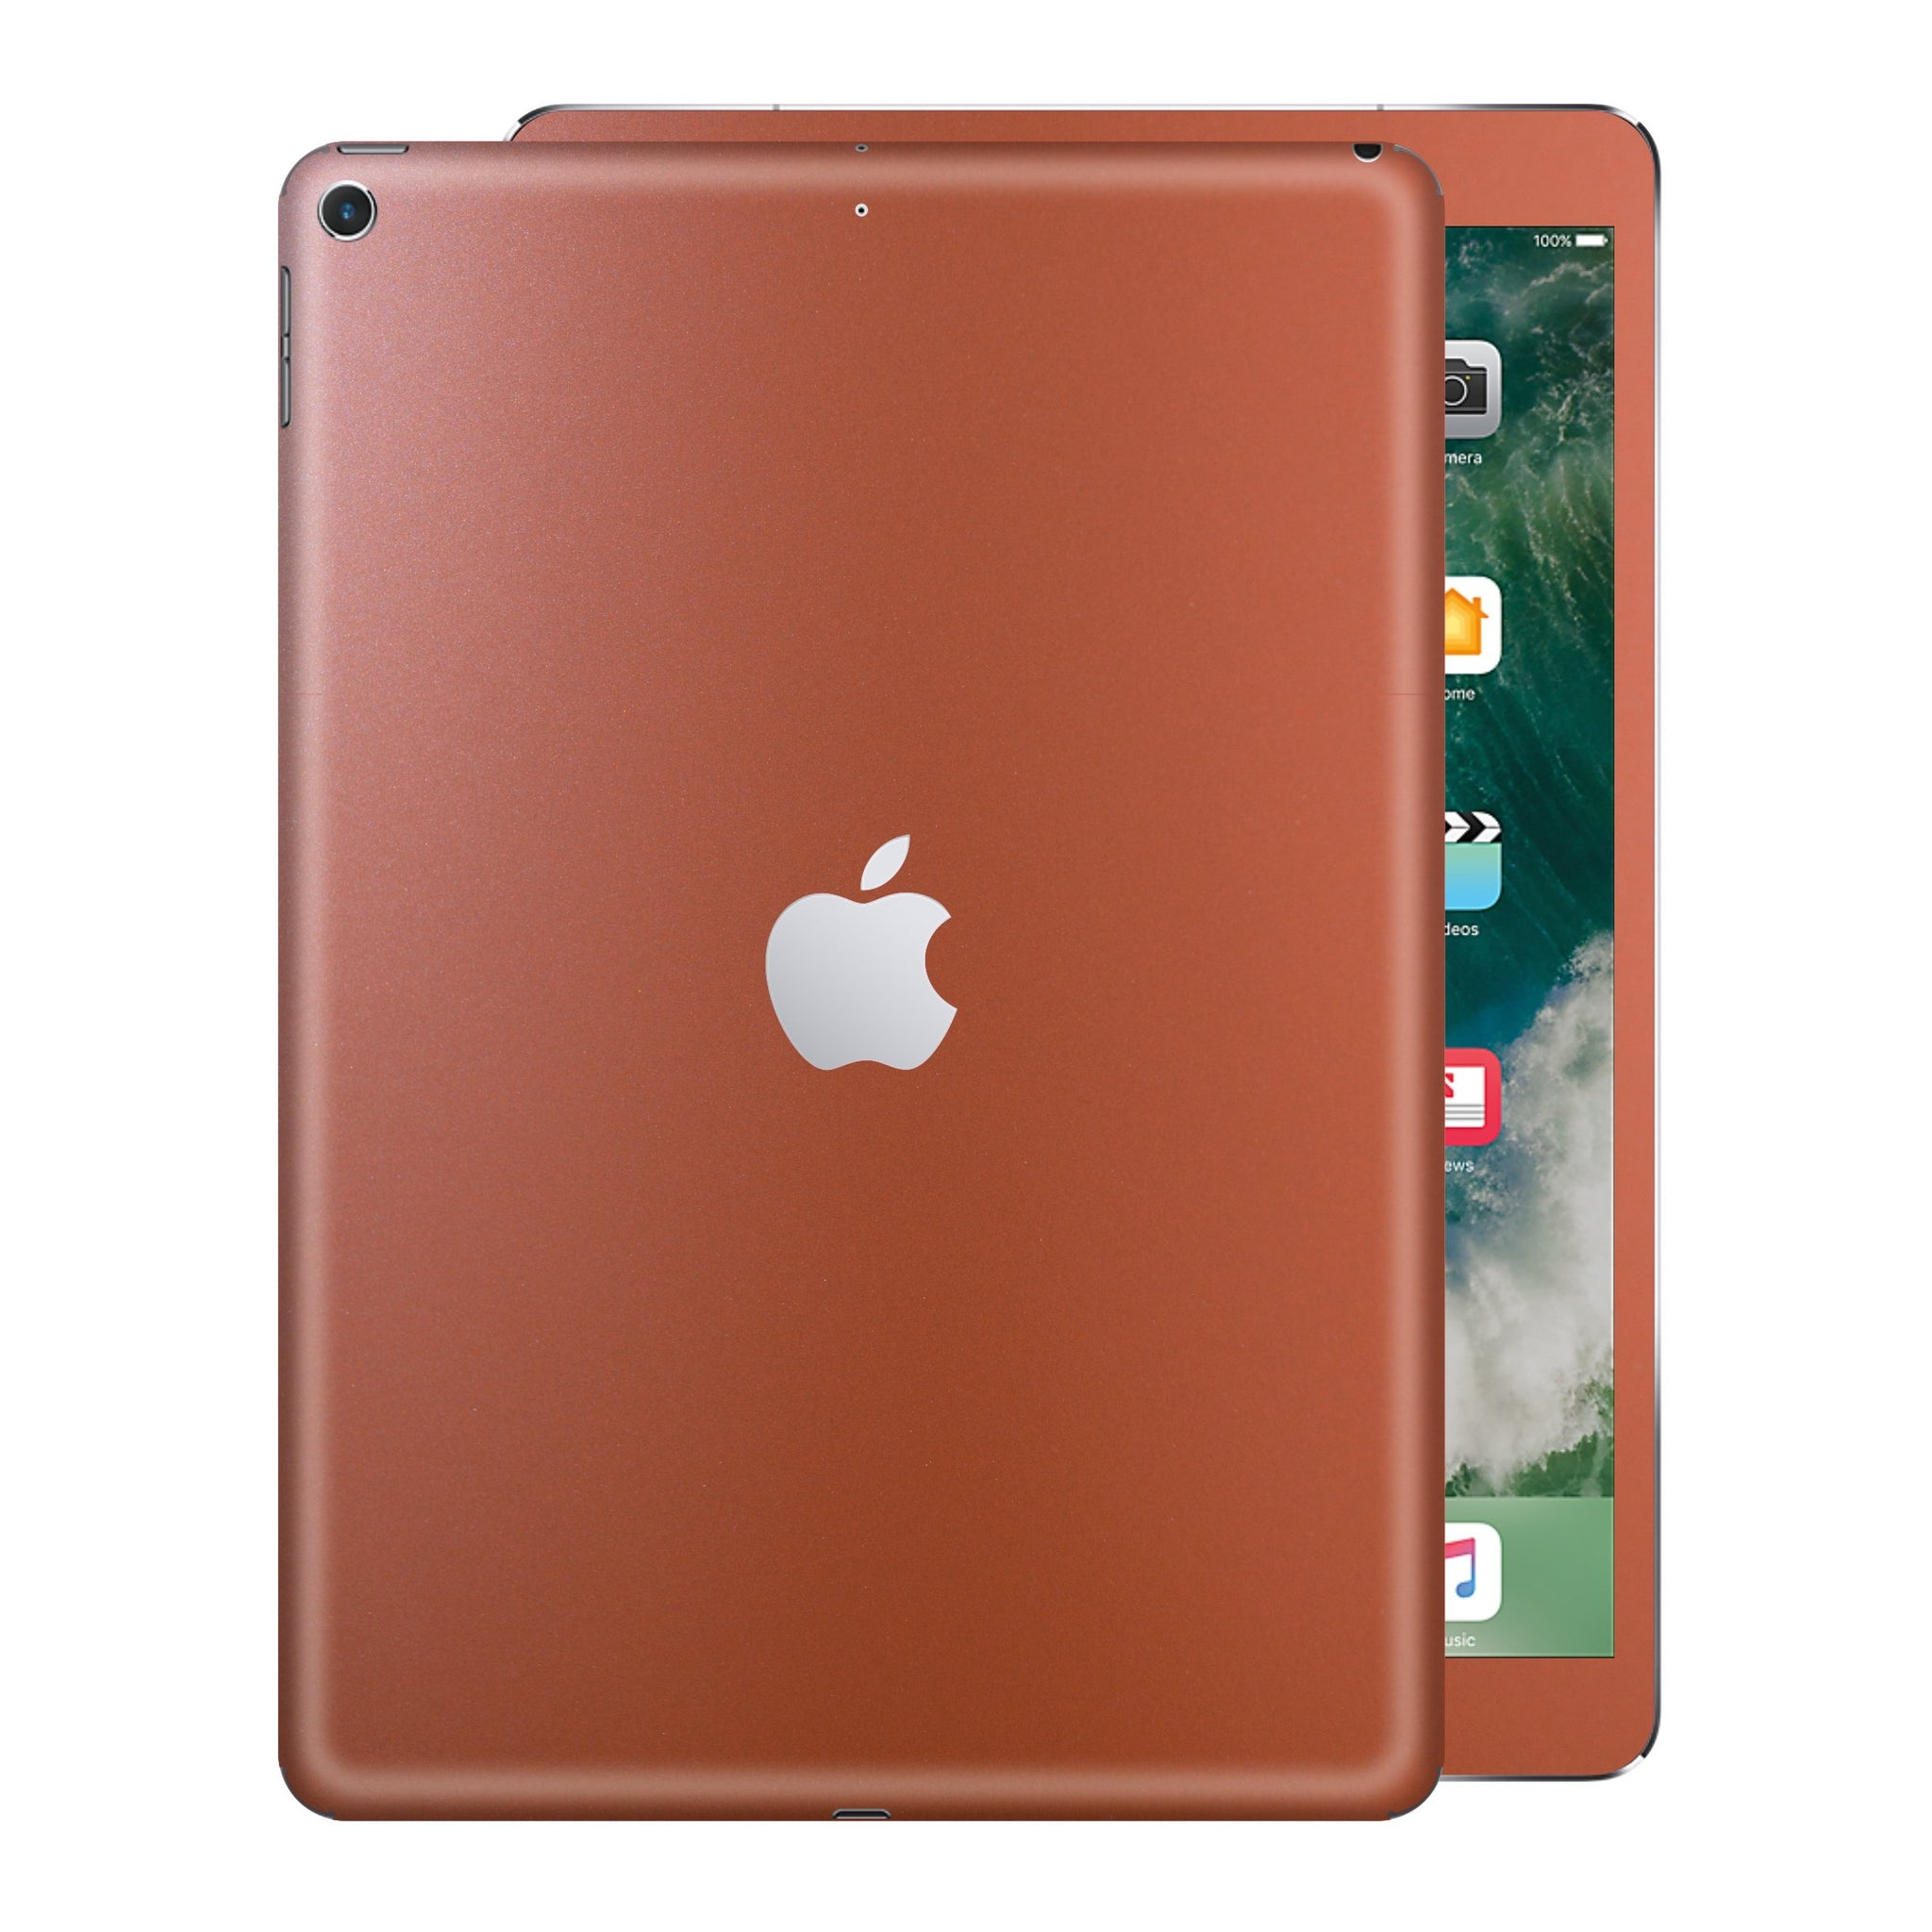 iPad 9.7 inch 2017 Matt Matte Rose Gold Metallic Skin Wrap Sticker Decal Cover Protector by EasySkinz